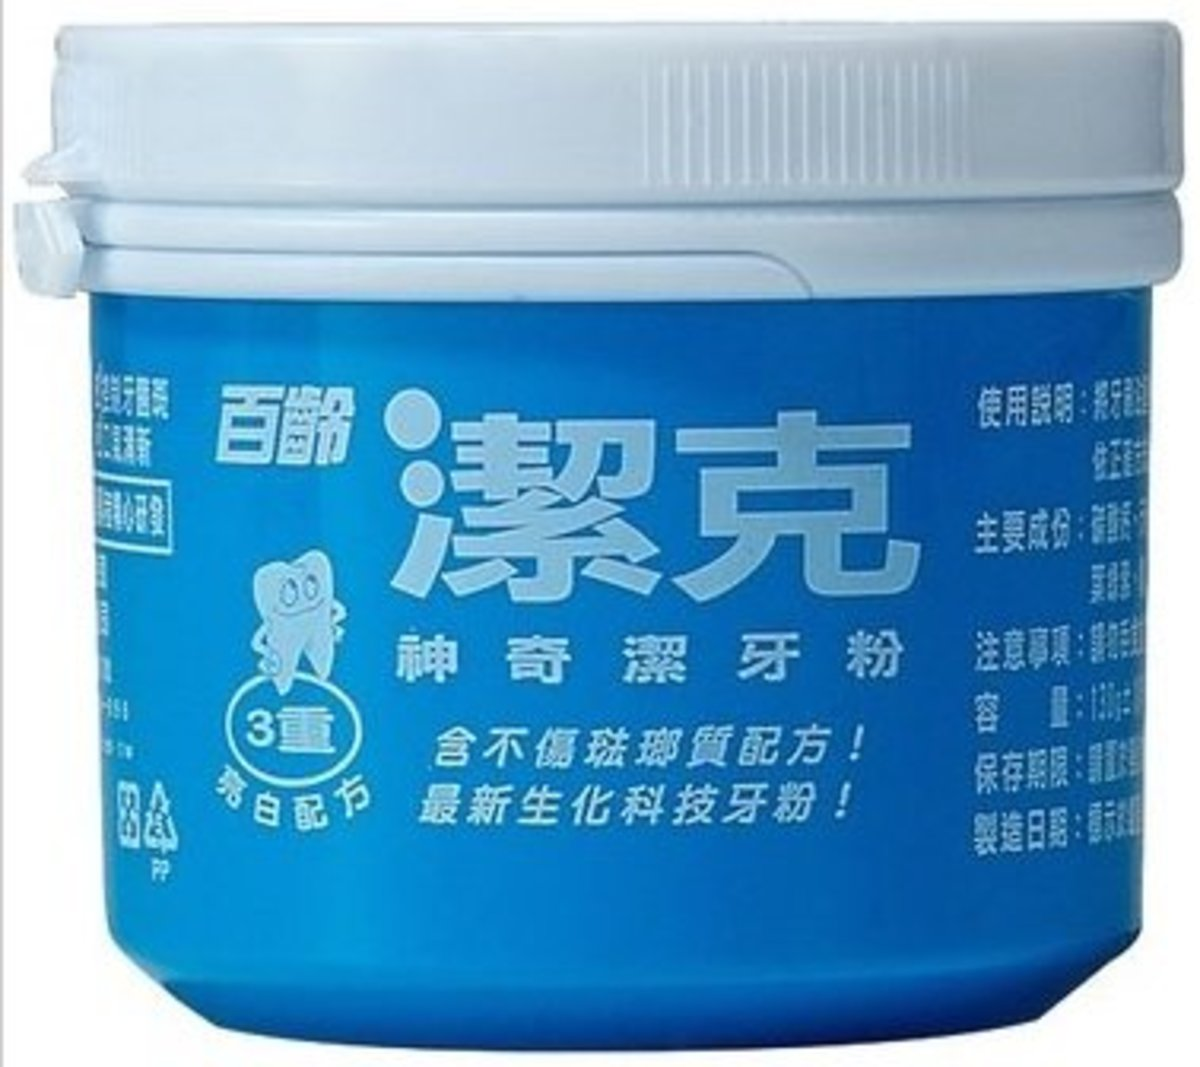 Teeth cleaning powder - 1 boxes